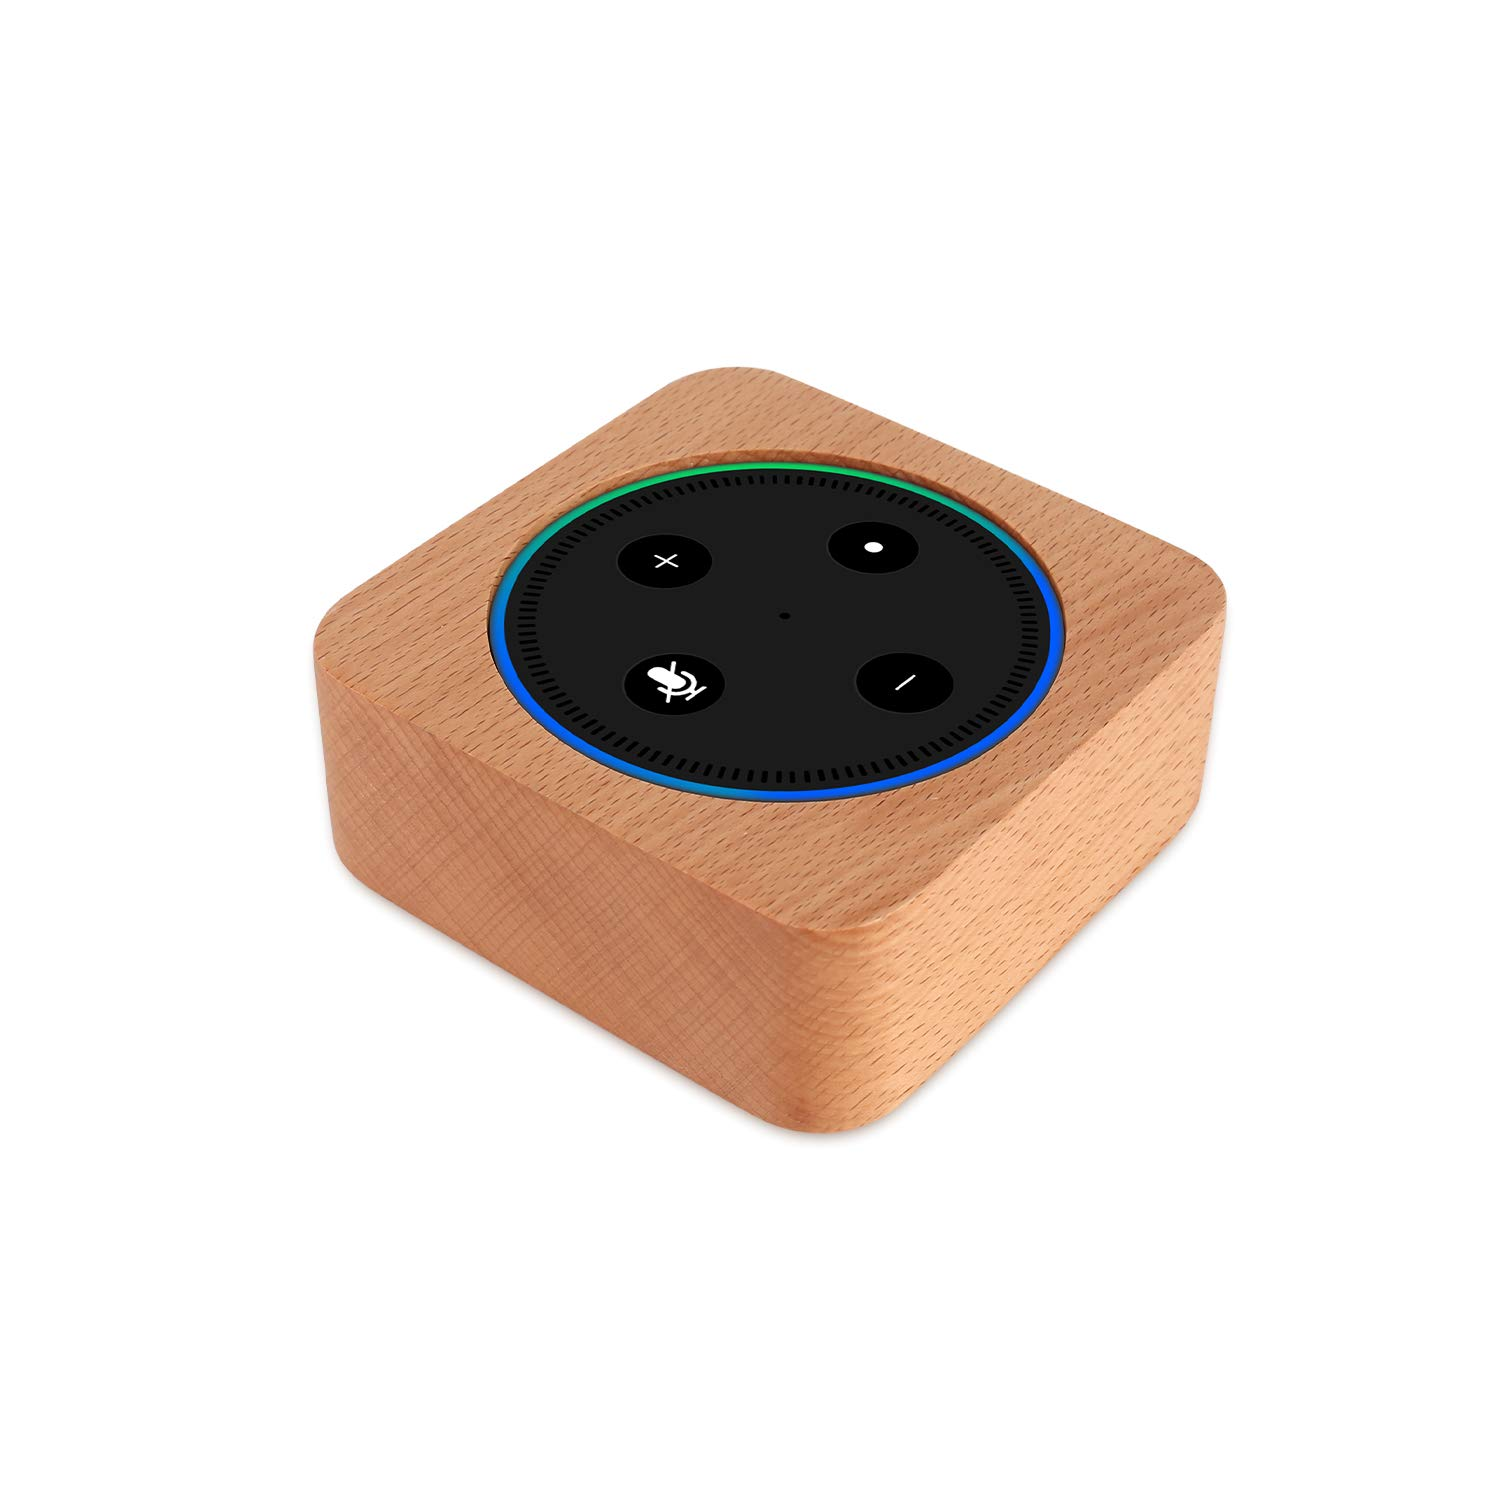 CamRom Natural Solid Wood Stand For Amazon Echo Dot【2nd Generation】, Solid Wood Speaker Holder Docking Station for Alexa, Protective Case Made from Beech Wood, Saving Space on Nightstand or Tables